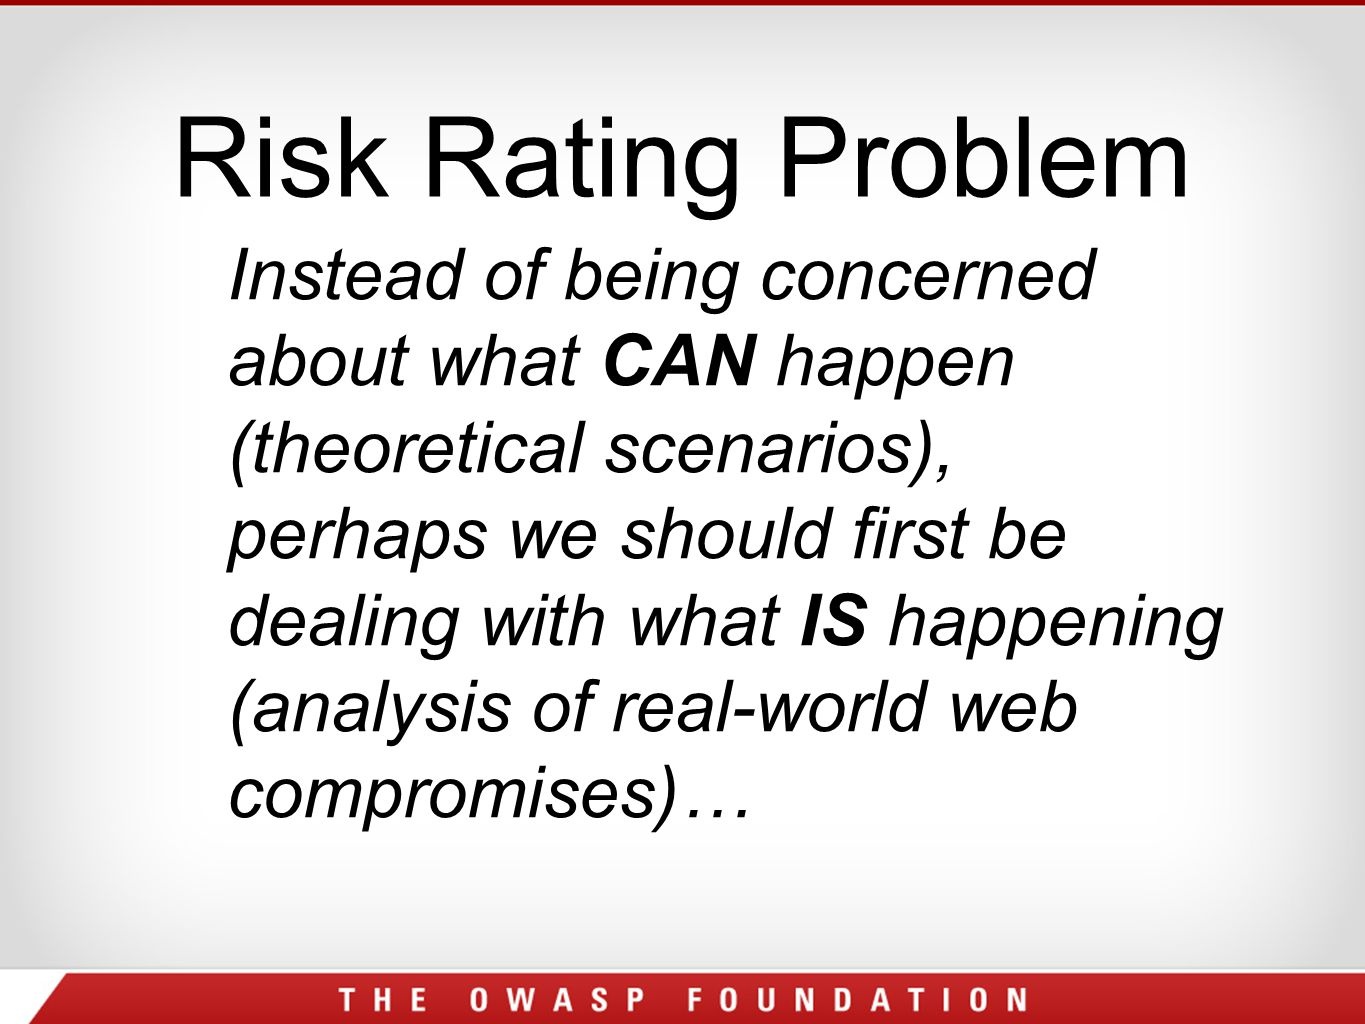 Risk Rating Problem Instead of being concerned about what CAN happen (theoretical scenarios), perhaps we should first be dealing with what IS happening (analysis of real-world web compromises)…